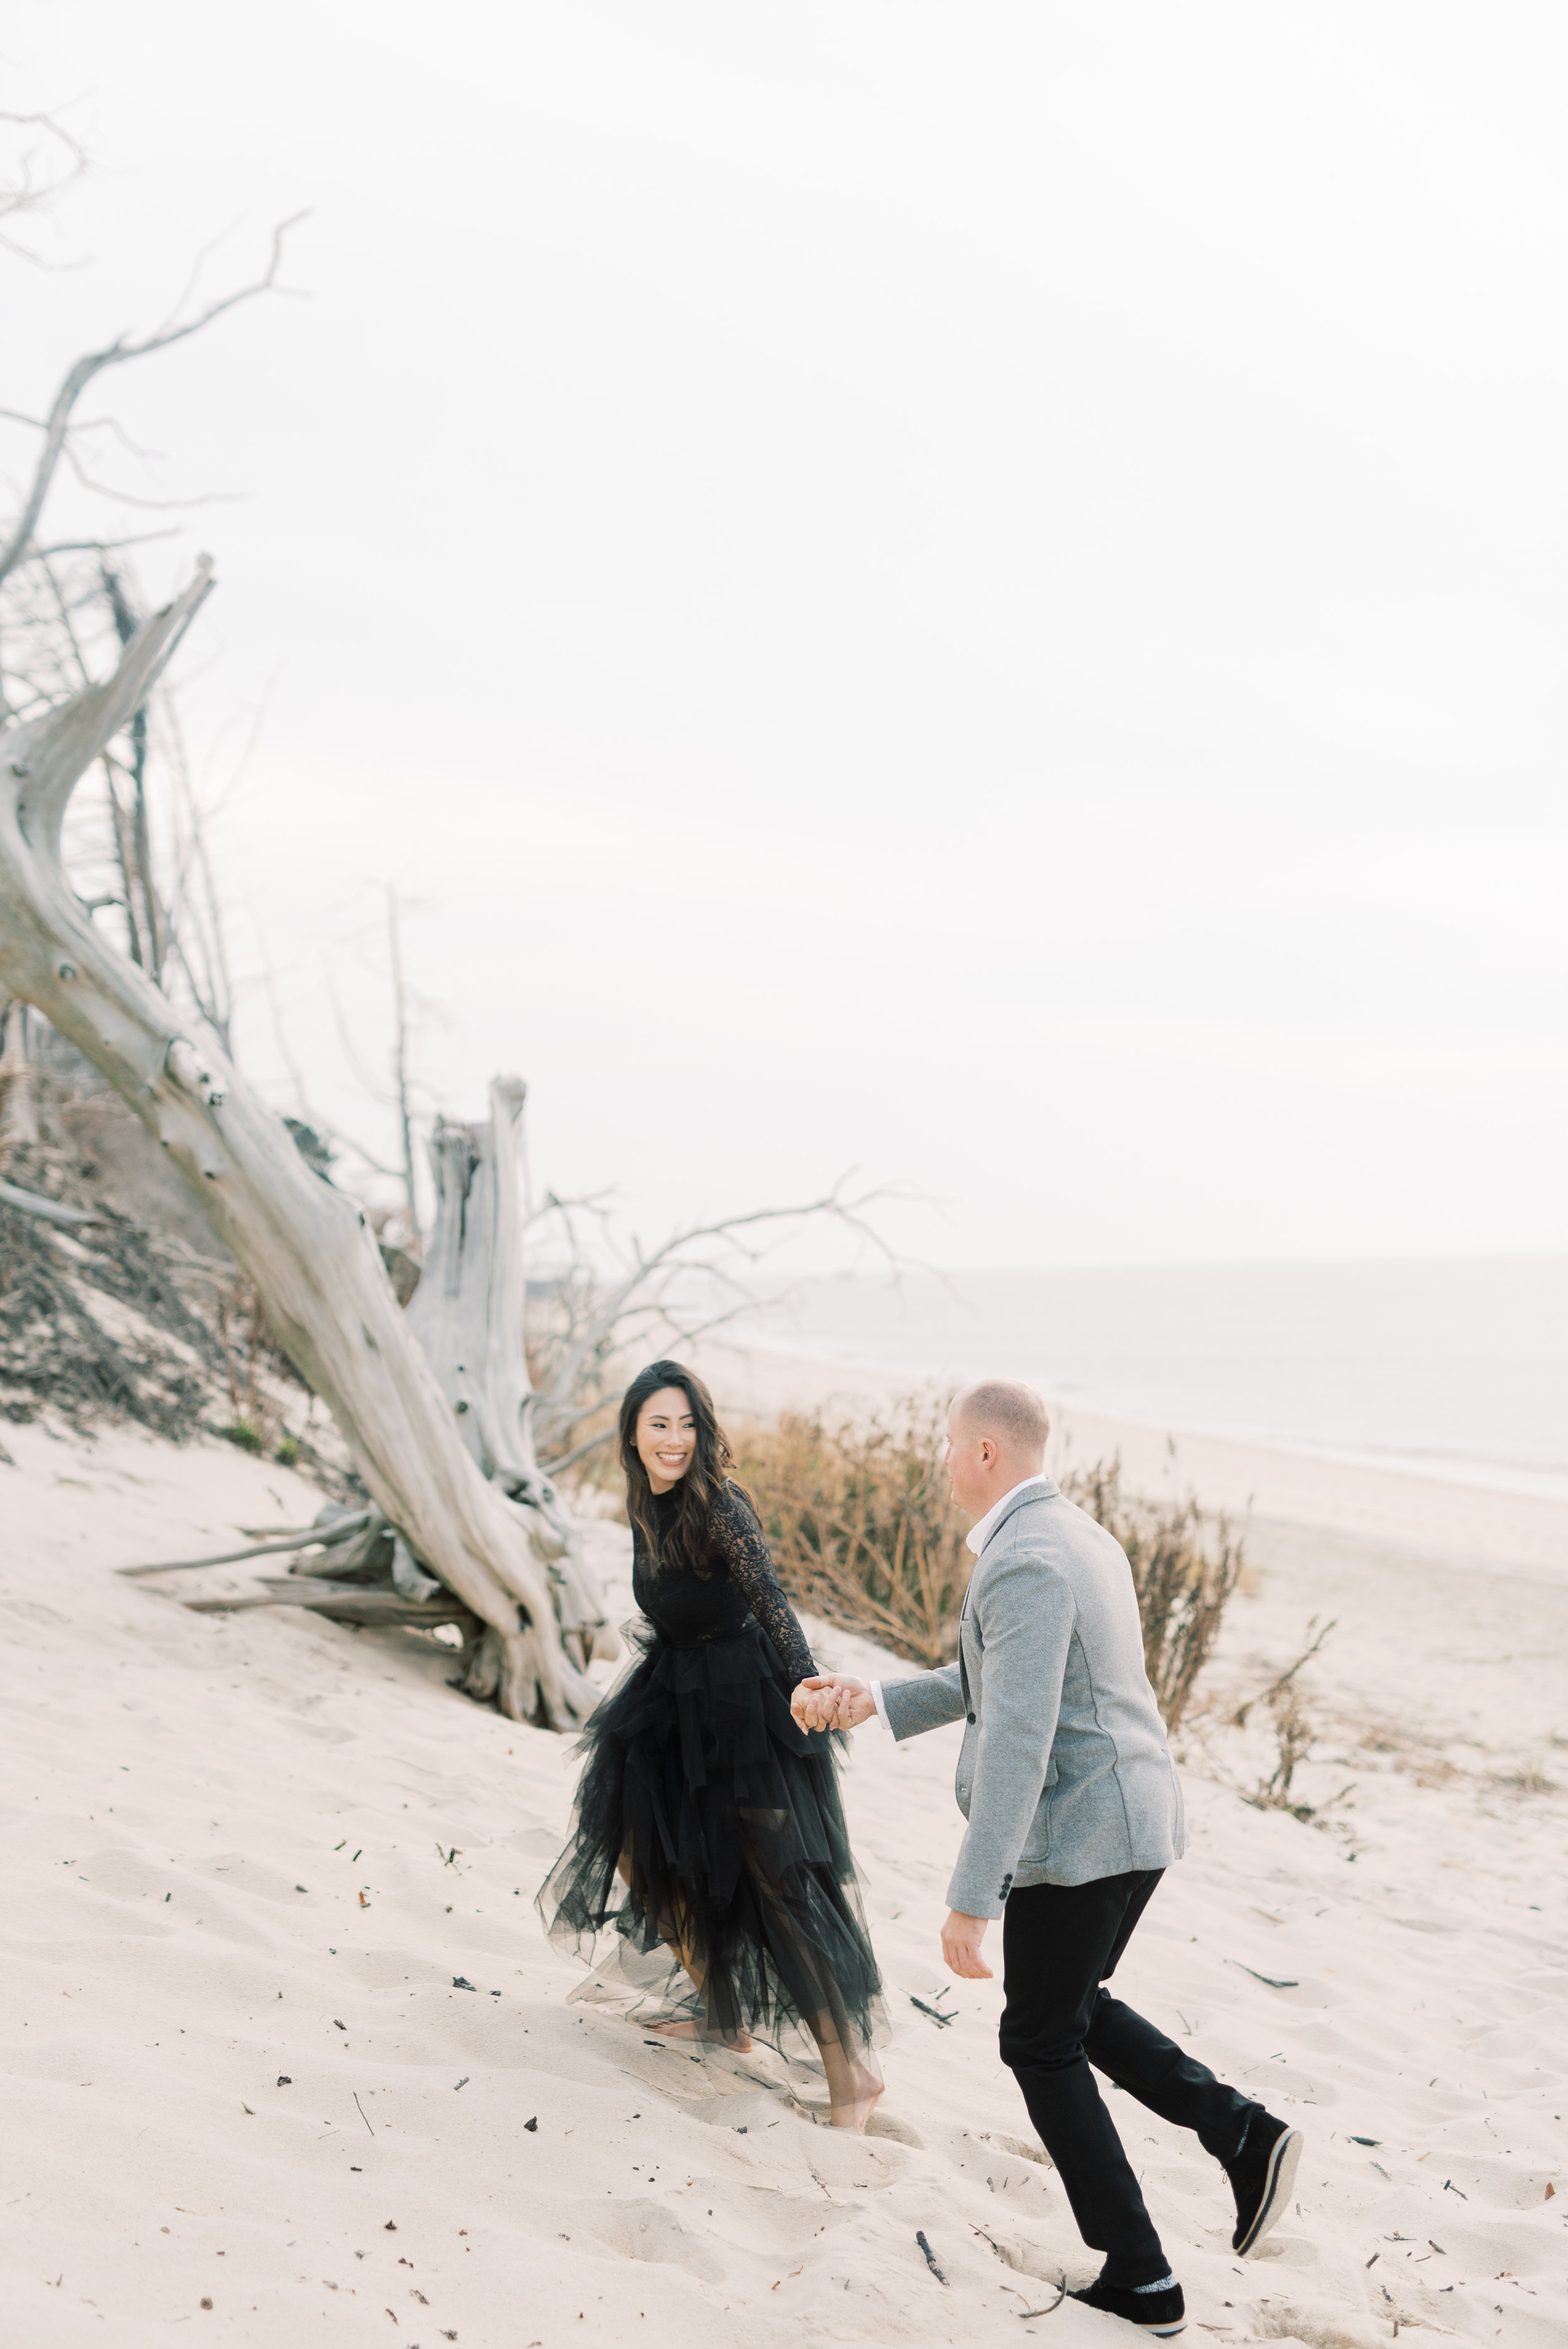 haley-richter-photography-cape-may-engagement-session-033.jpg